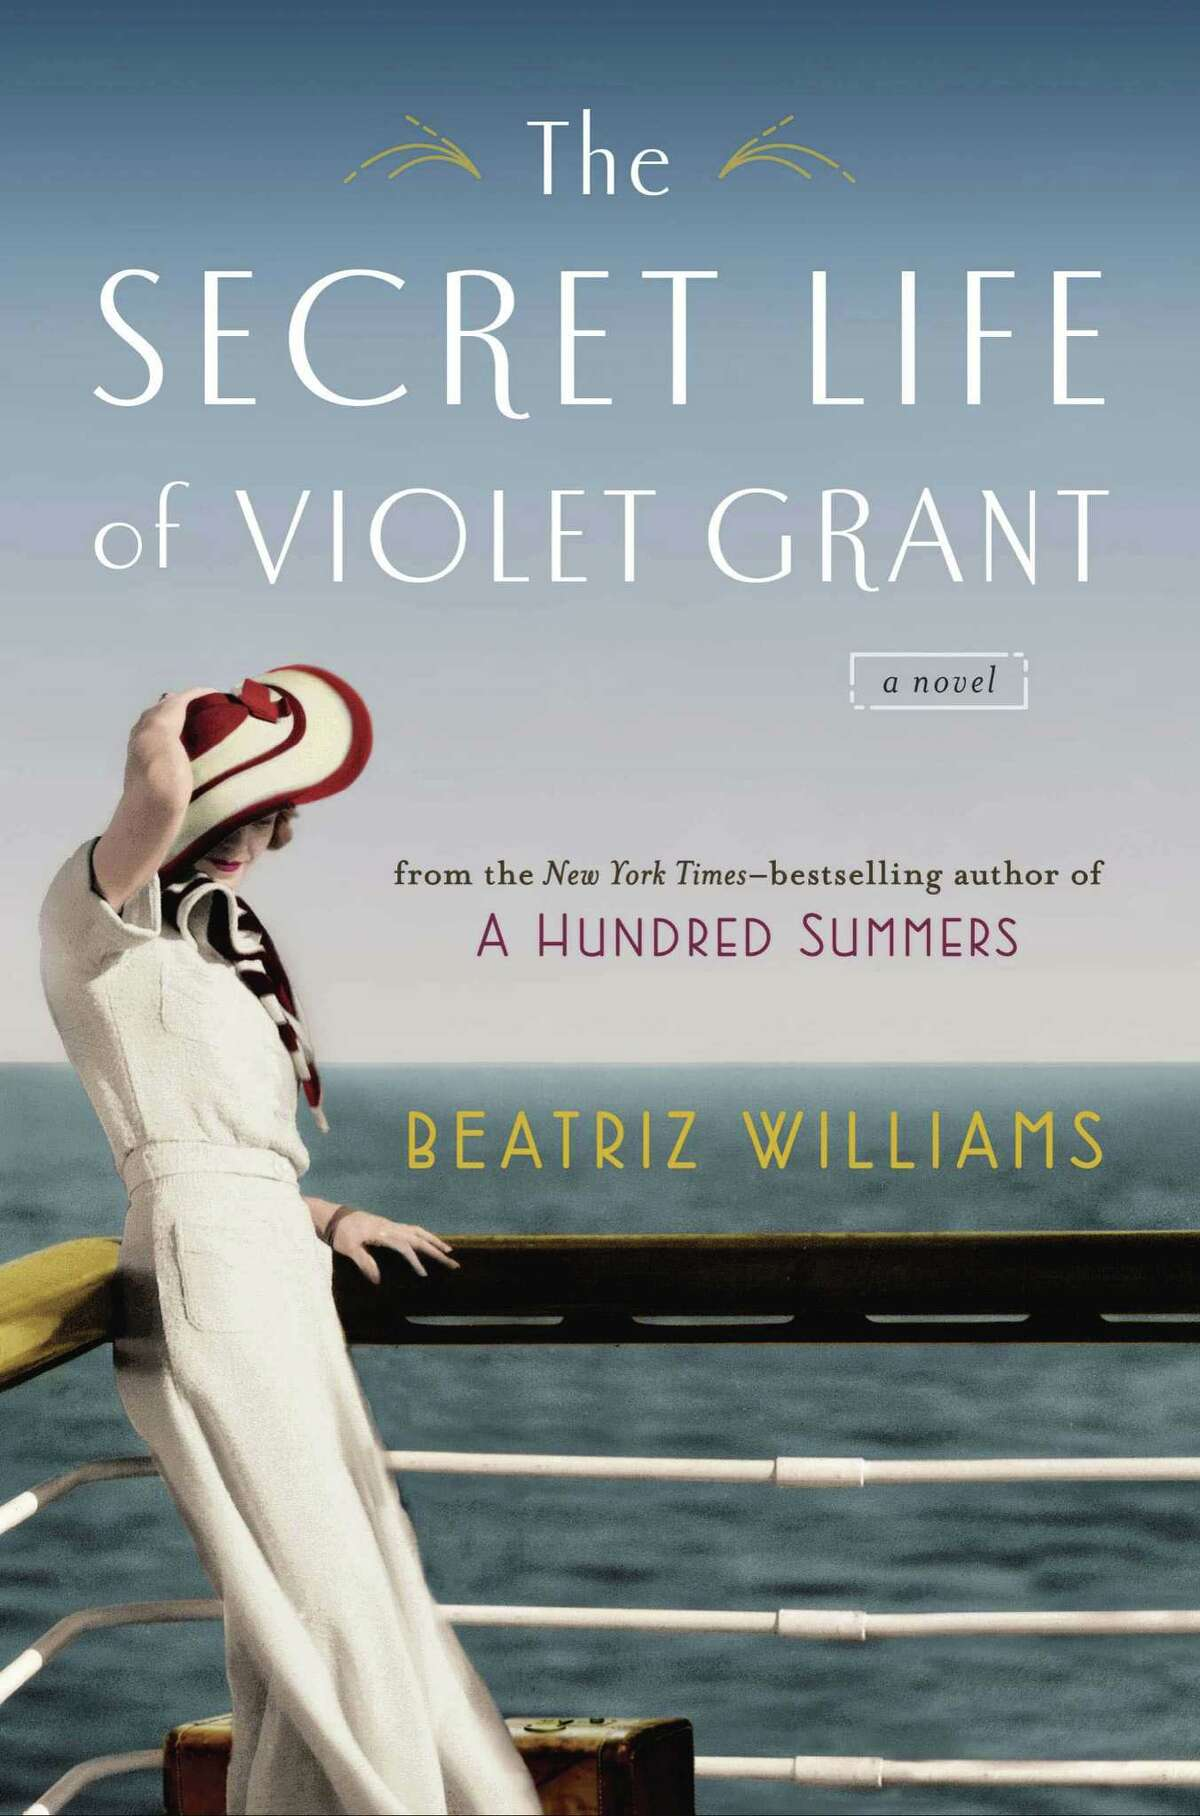 Greenwich resident Beatriz Williams will discuss her new novel, ìThe Secret Life of Violet Grant,î on Tuesday at 7 p.m., in the Greenwich Library Meeting Room, 101 West Putnam Ave. Series is open to the public at no charge; seating will be available on a first-come, first-served basis. Doors open at 6:30 p.m. For more information, contact Marianne Weill at 203-622-7933 or visit www.greenwichlibrary.org/authorslive.